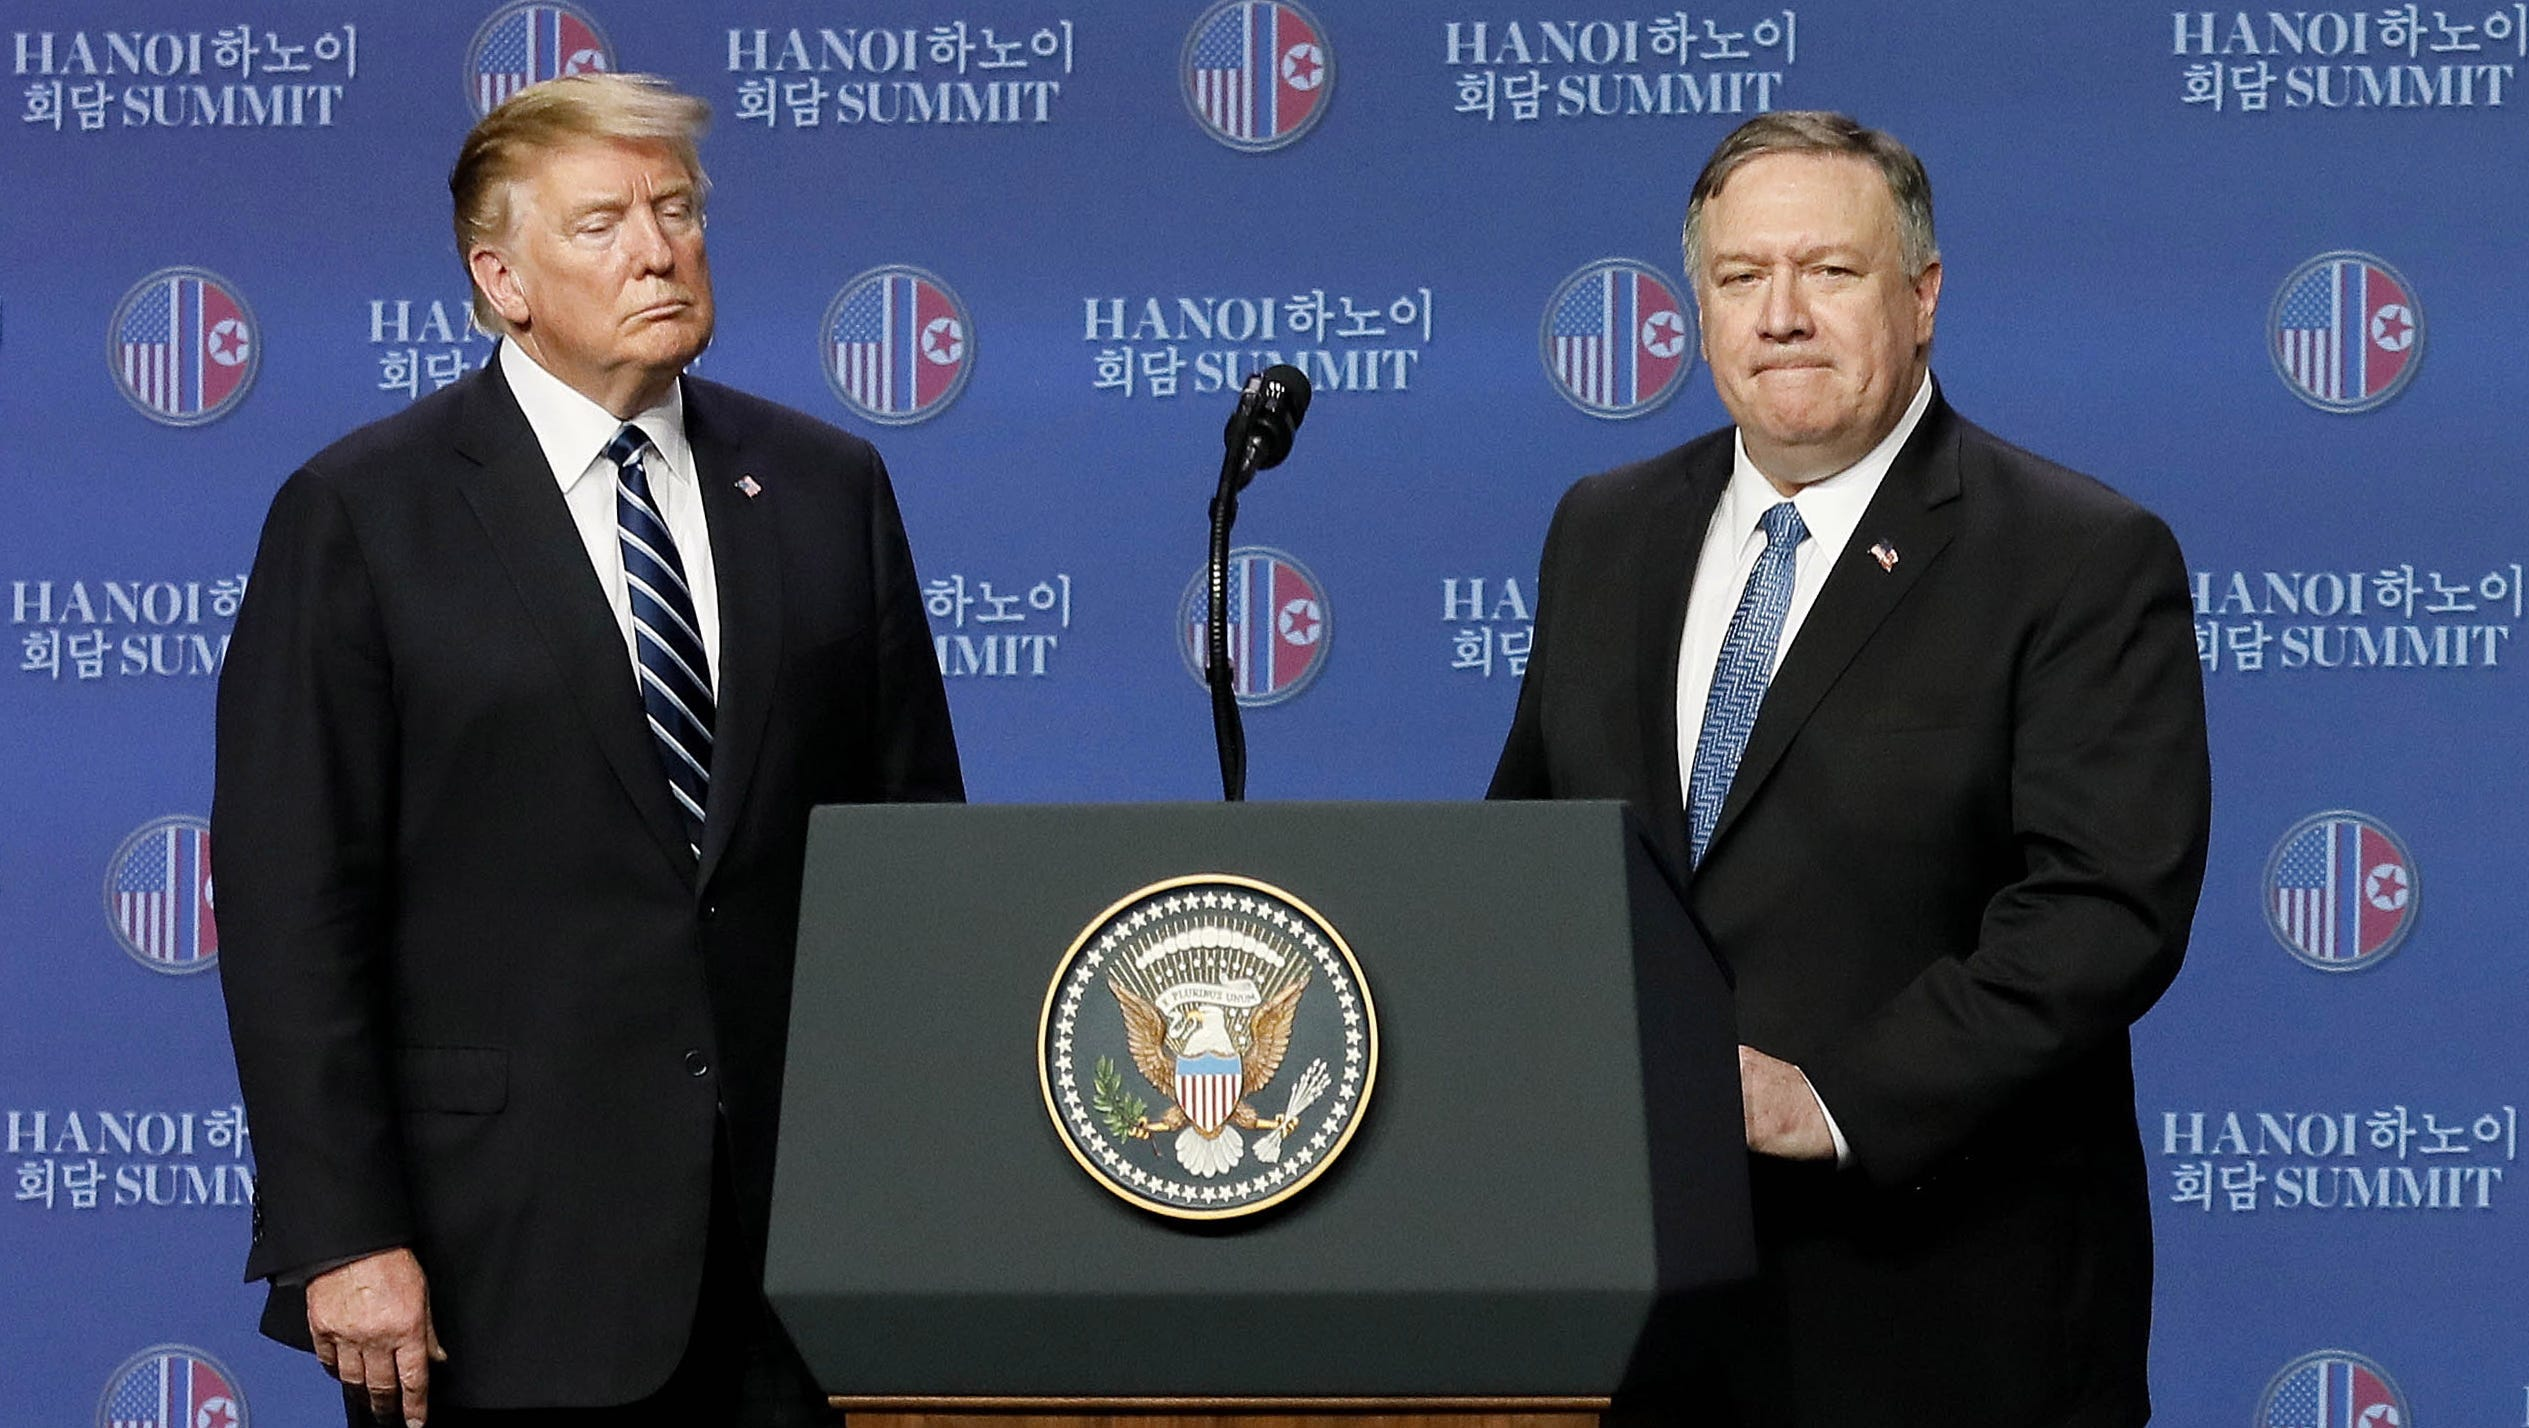 President Donald J. Trump and Secretary of State Mike Pompeo (R) react during a press conference after a meeting with the North Korean leader, in Hanoi, Vietnam, 28 February 2019. US President Trump and North Korean leader Kim Jong-Un abruptly ended their second summit on 28 February, with no agreement.